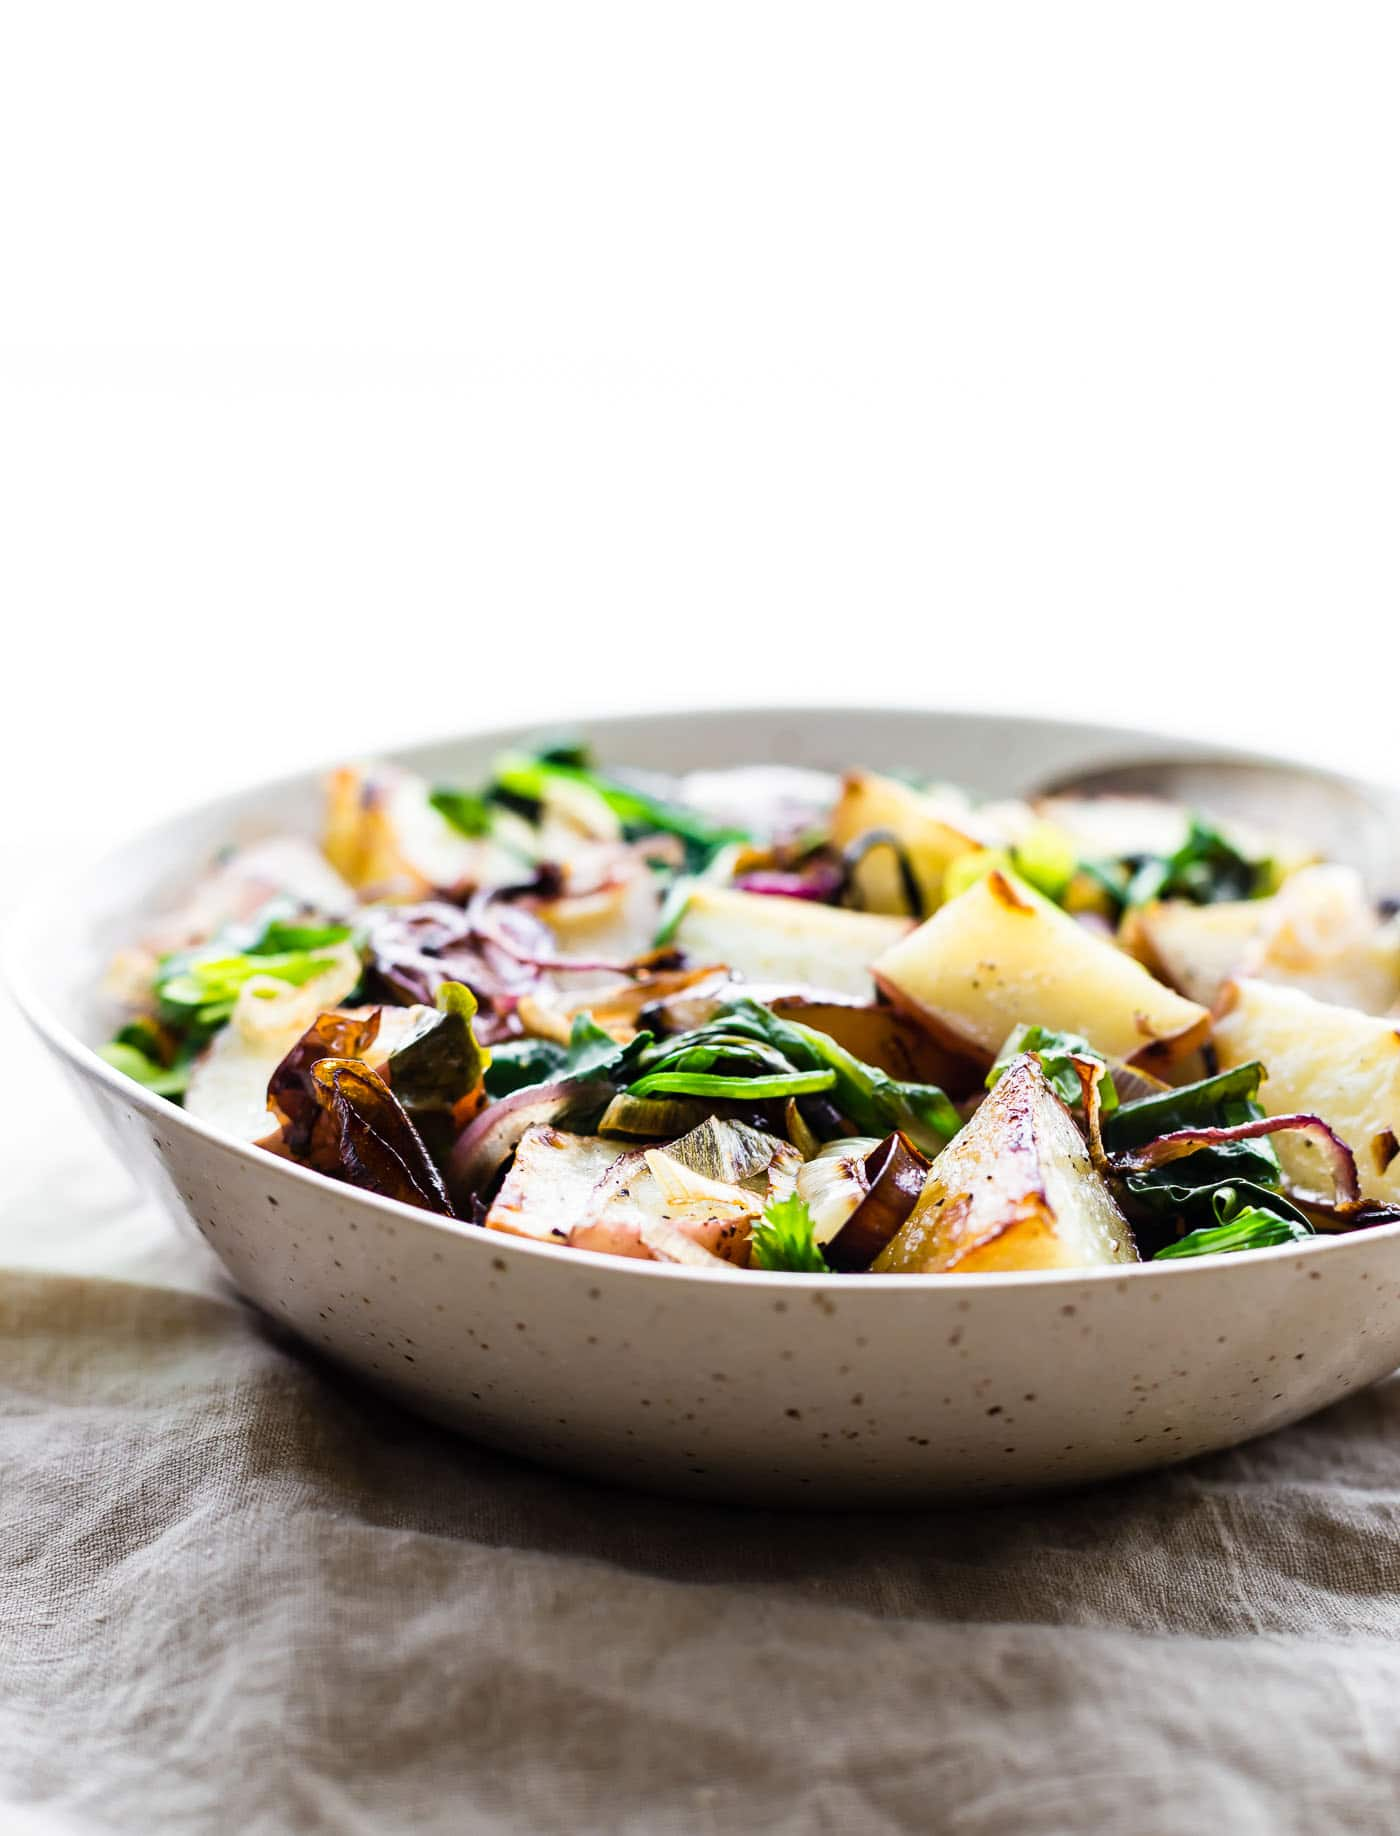 Spring Leek and Potato Pan roast! This Vegetable Pan Roast is packed with Seasonal Leek, Potato, and Steamed Spinach Greens! A flavorful, healthy, and easy to make side dish you can make all in one pan! A paleo/vegan Spring recipe perfect for any gathering. Whole 30 friendly!